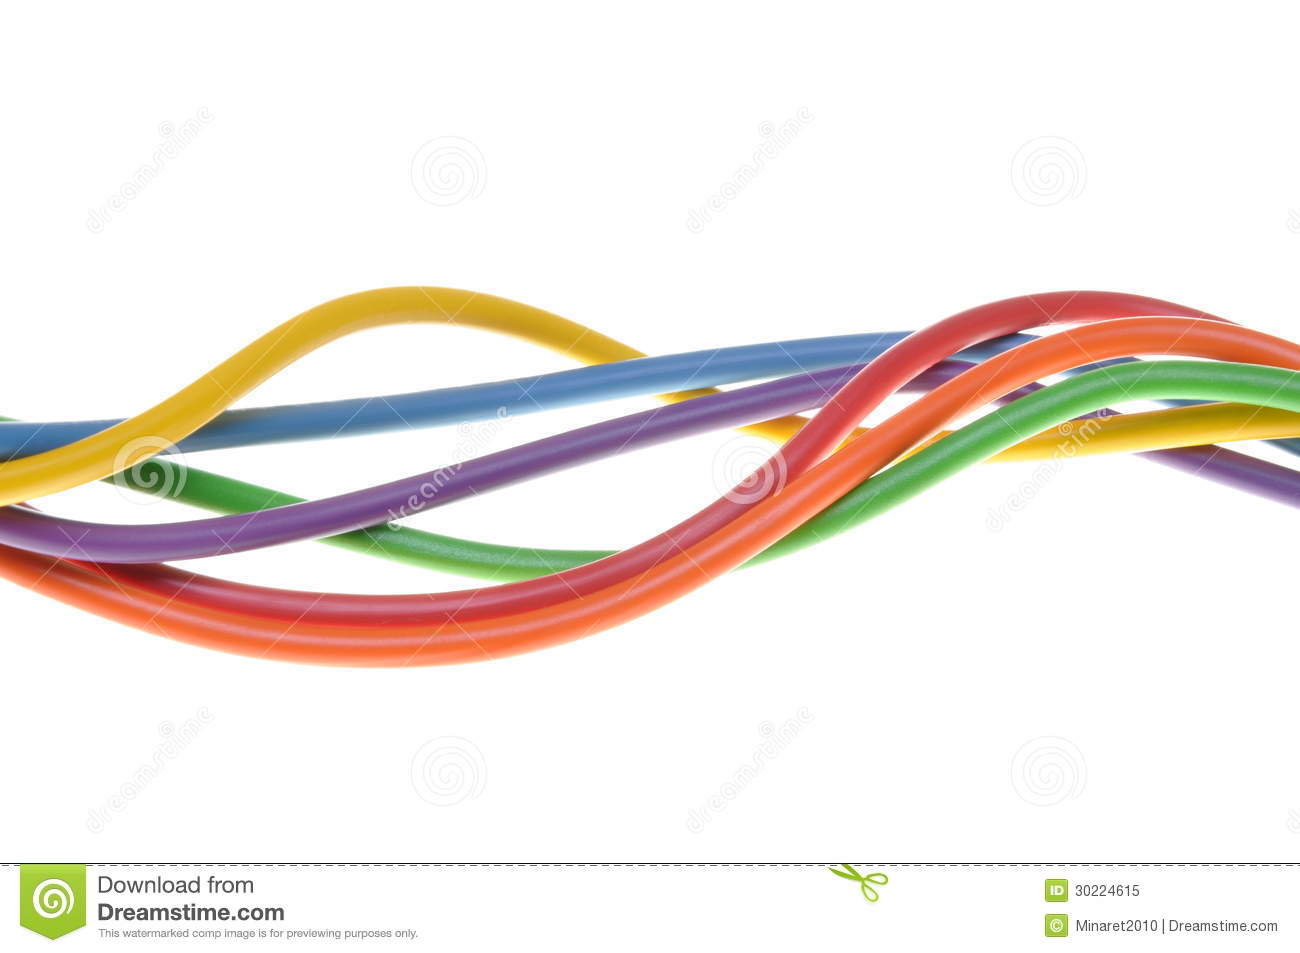 The Electric Colored Wires Used In Electrical And Computer Network ...